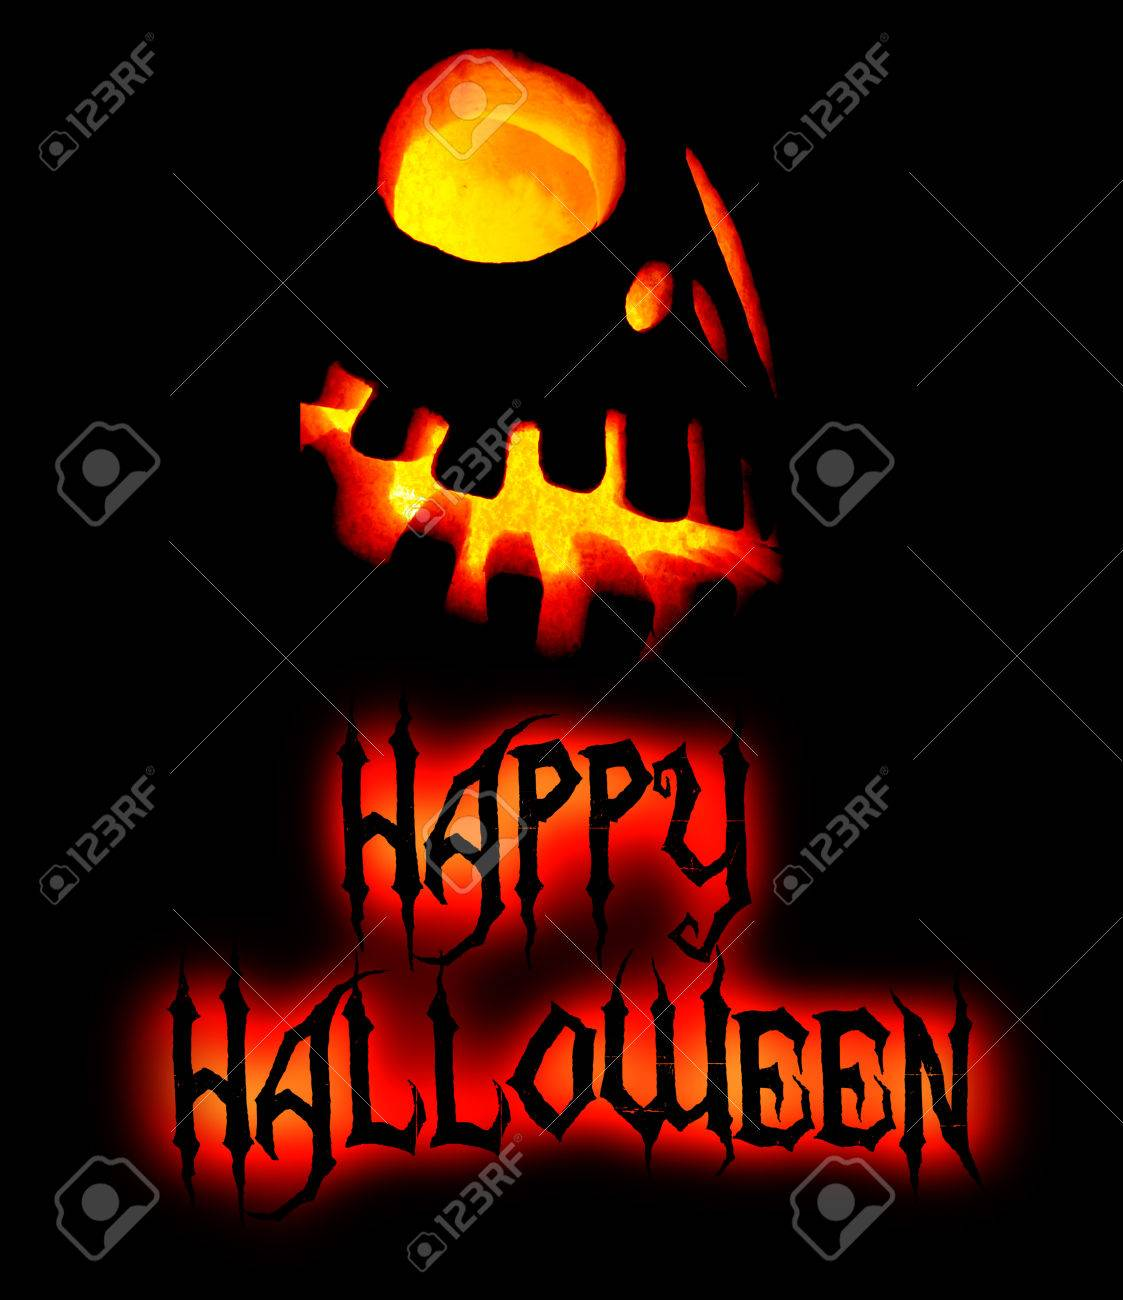 Delightful Happy Halloween Card With Scary Pumpkin Face And Black Lettering Saying  Happy Halloween, Yellow And